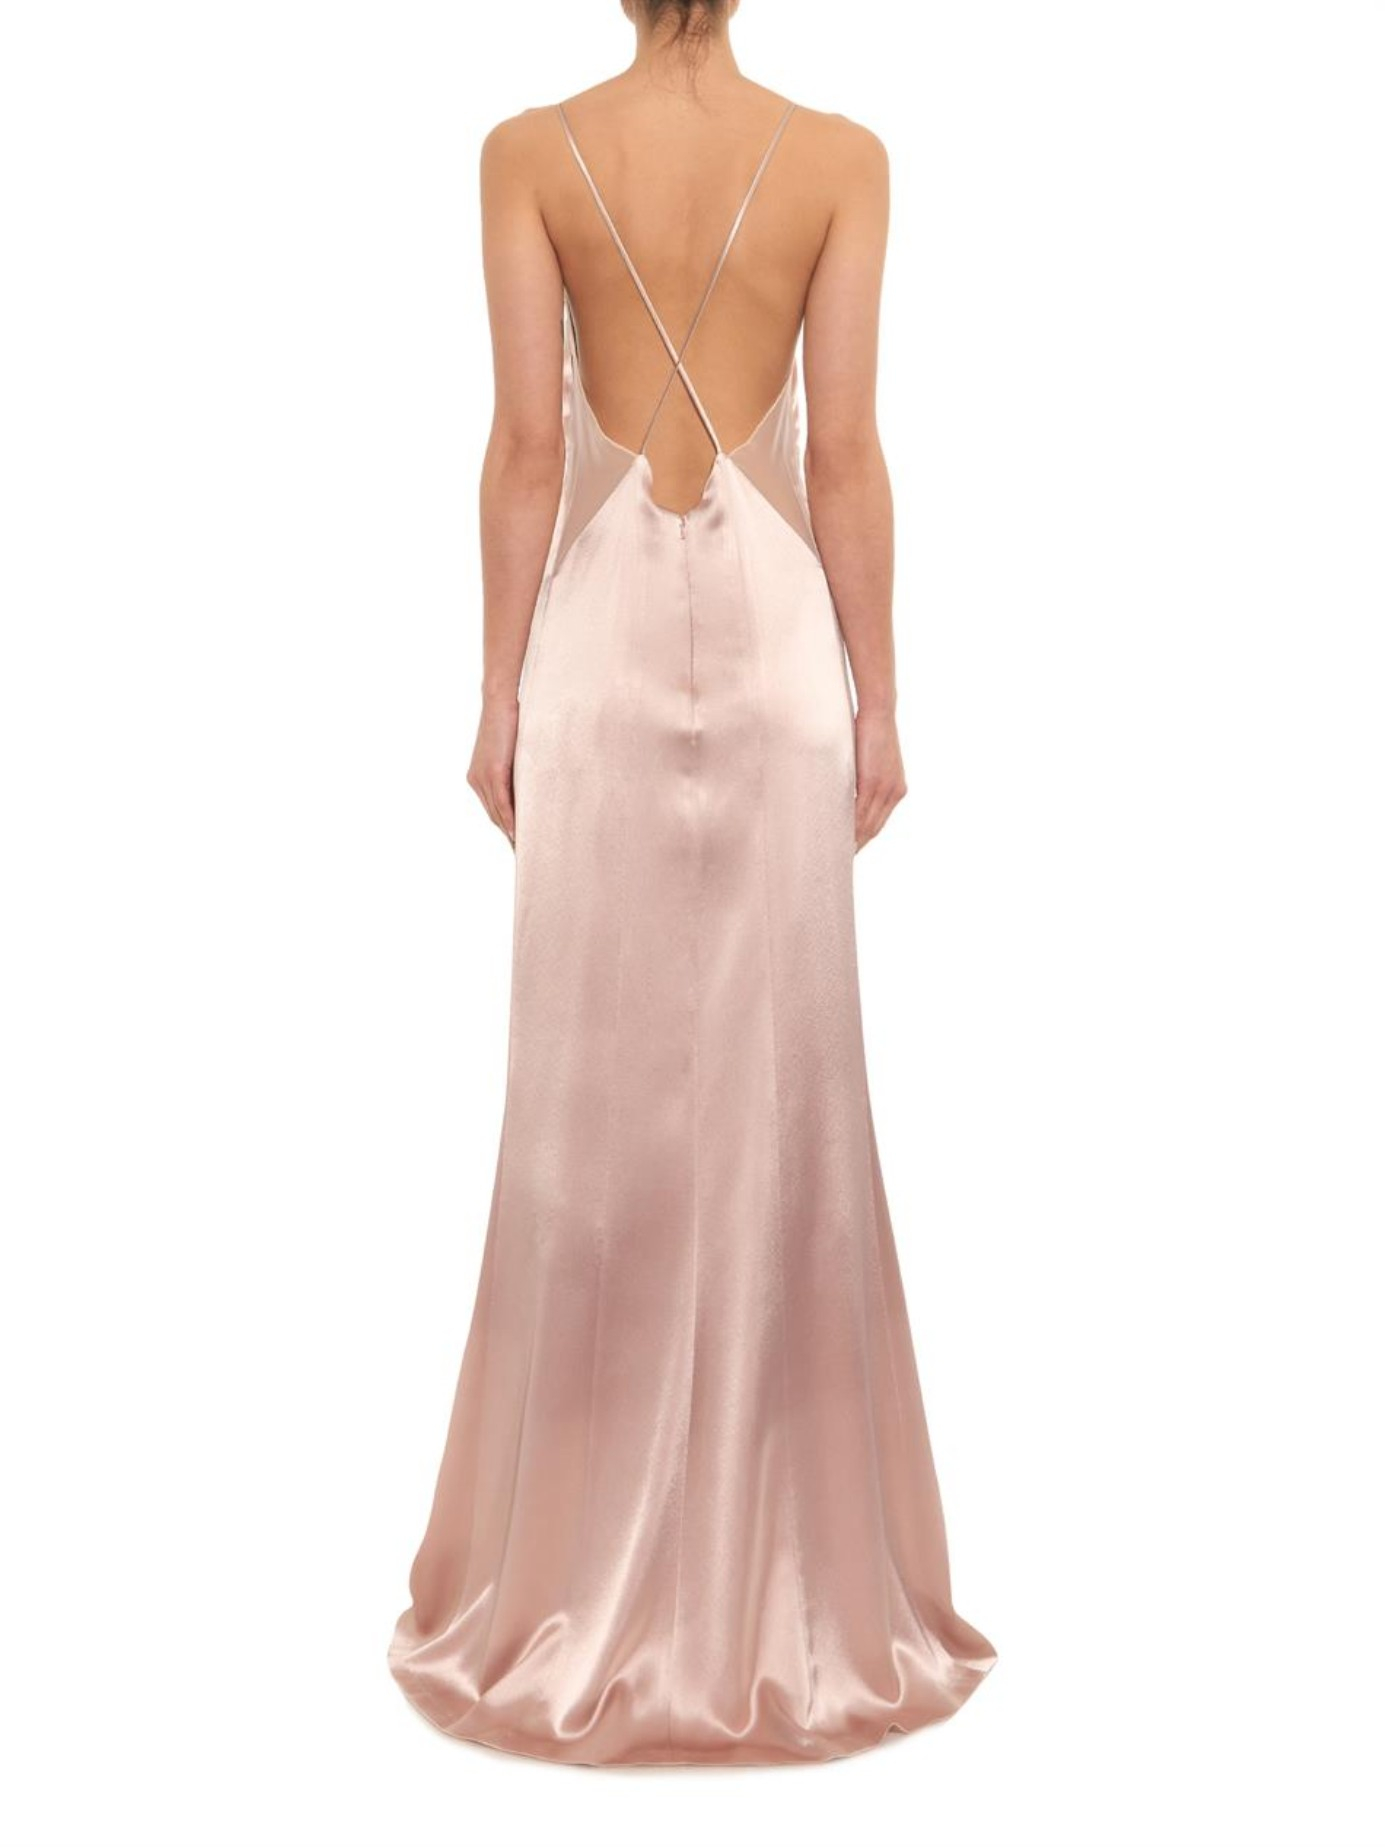 Lyst - Galvan London Sheer-mesh And Satin Gown in Natural